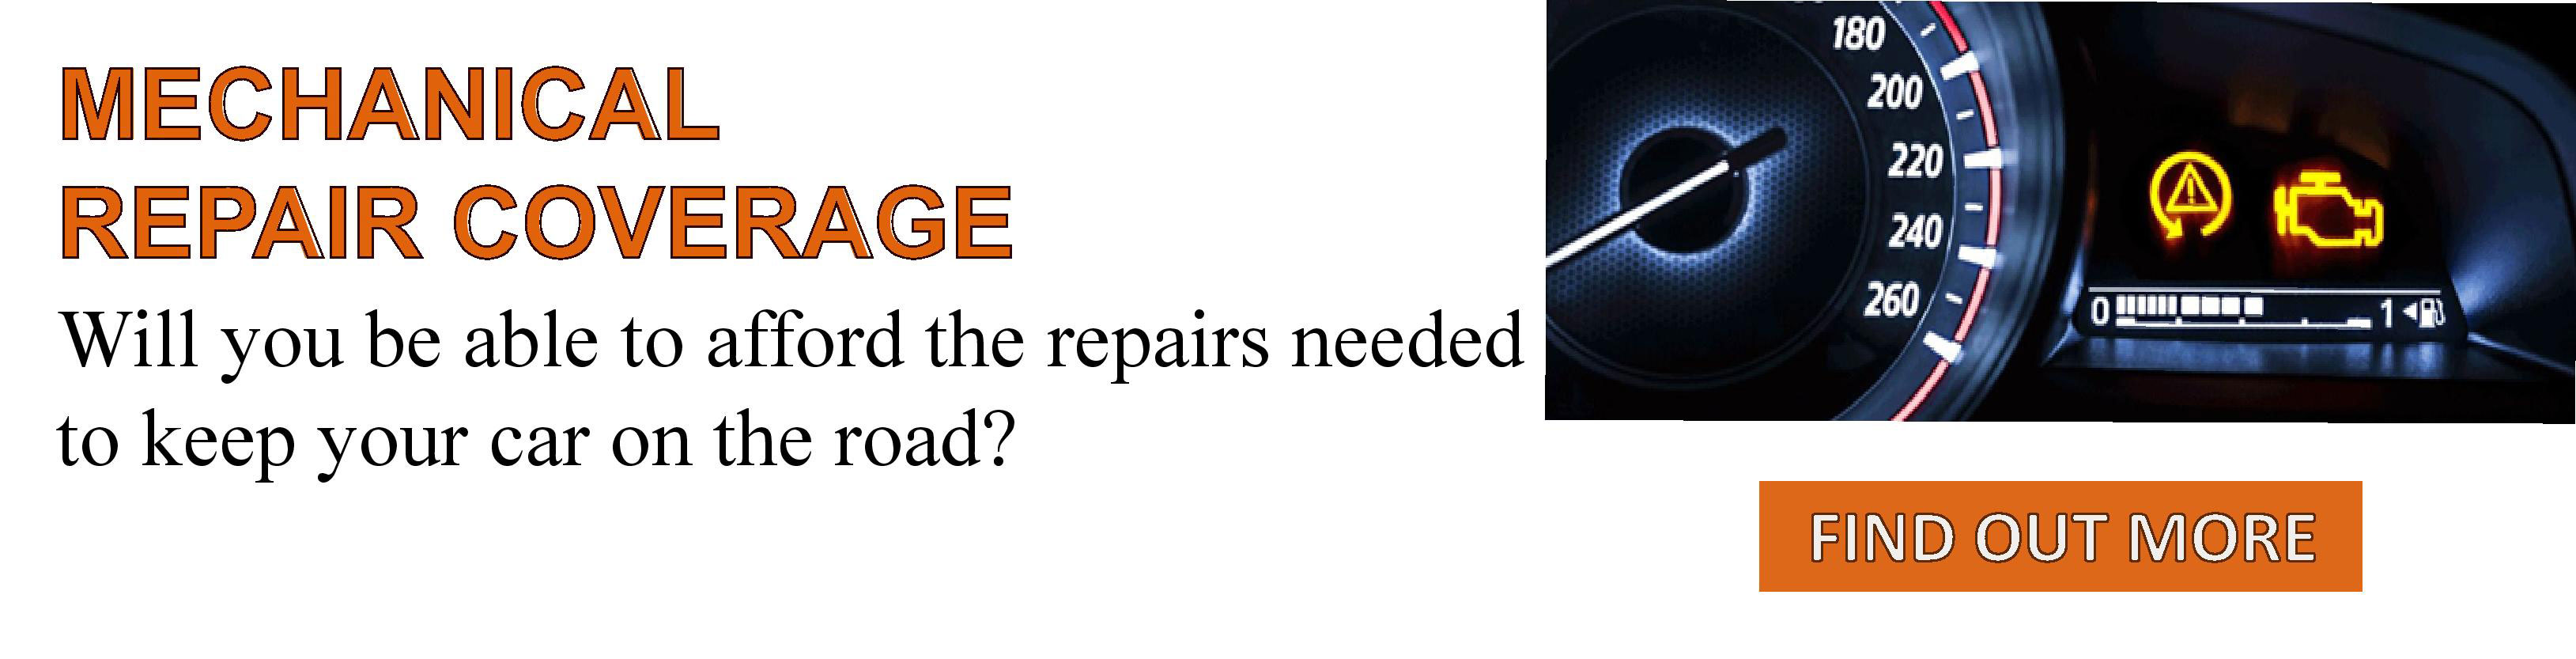 Mechanical Repair Coverage. will you be able to afford the repairs you need to keep your car on the road